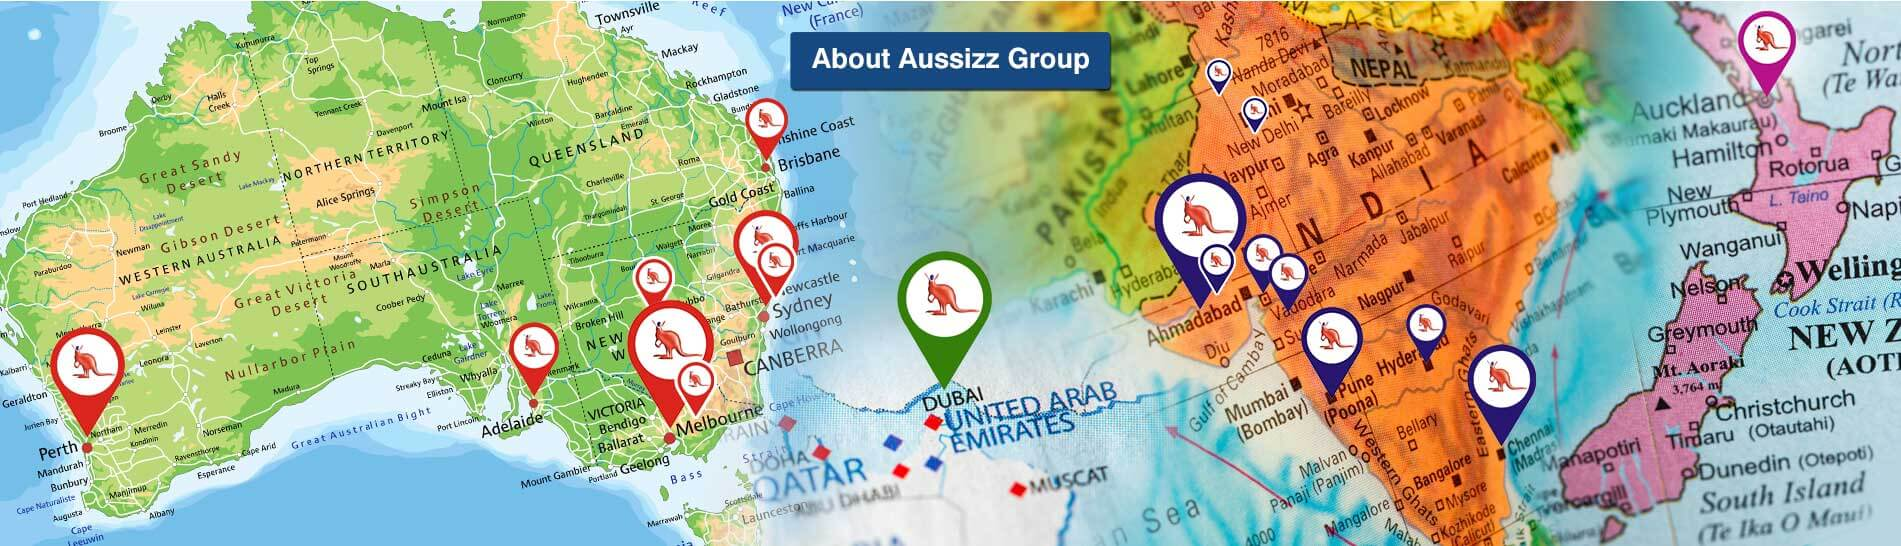 Aussizz Group Map